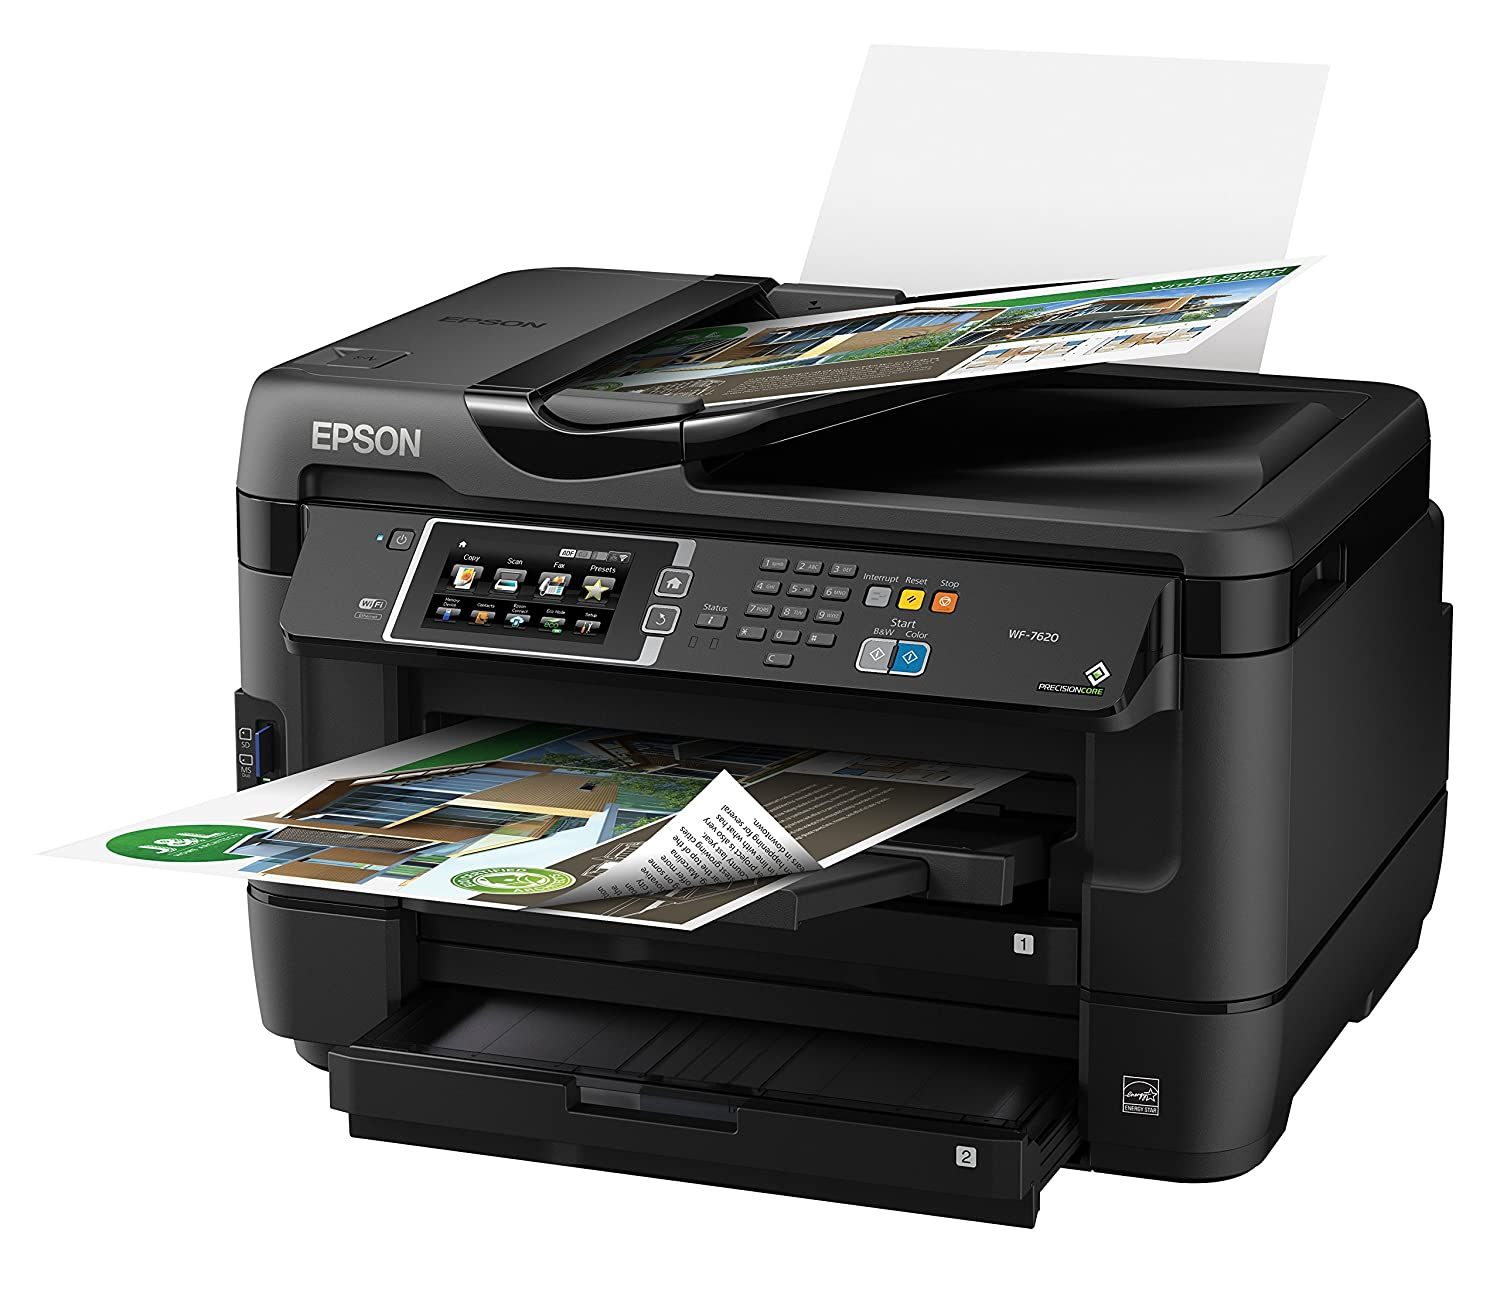 Color printouts in hyderabad - Amazon Com Epson Workforce Wf 7620 Wireless Color All In One Inkjet Printer With Scanner And Copier Electronics